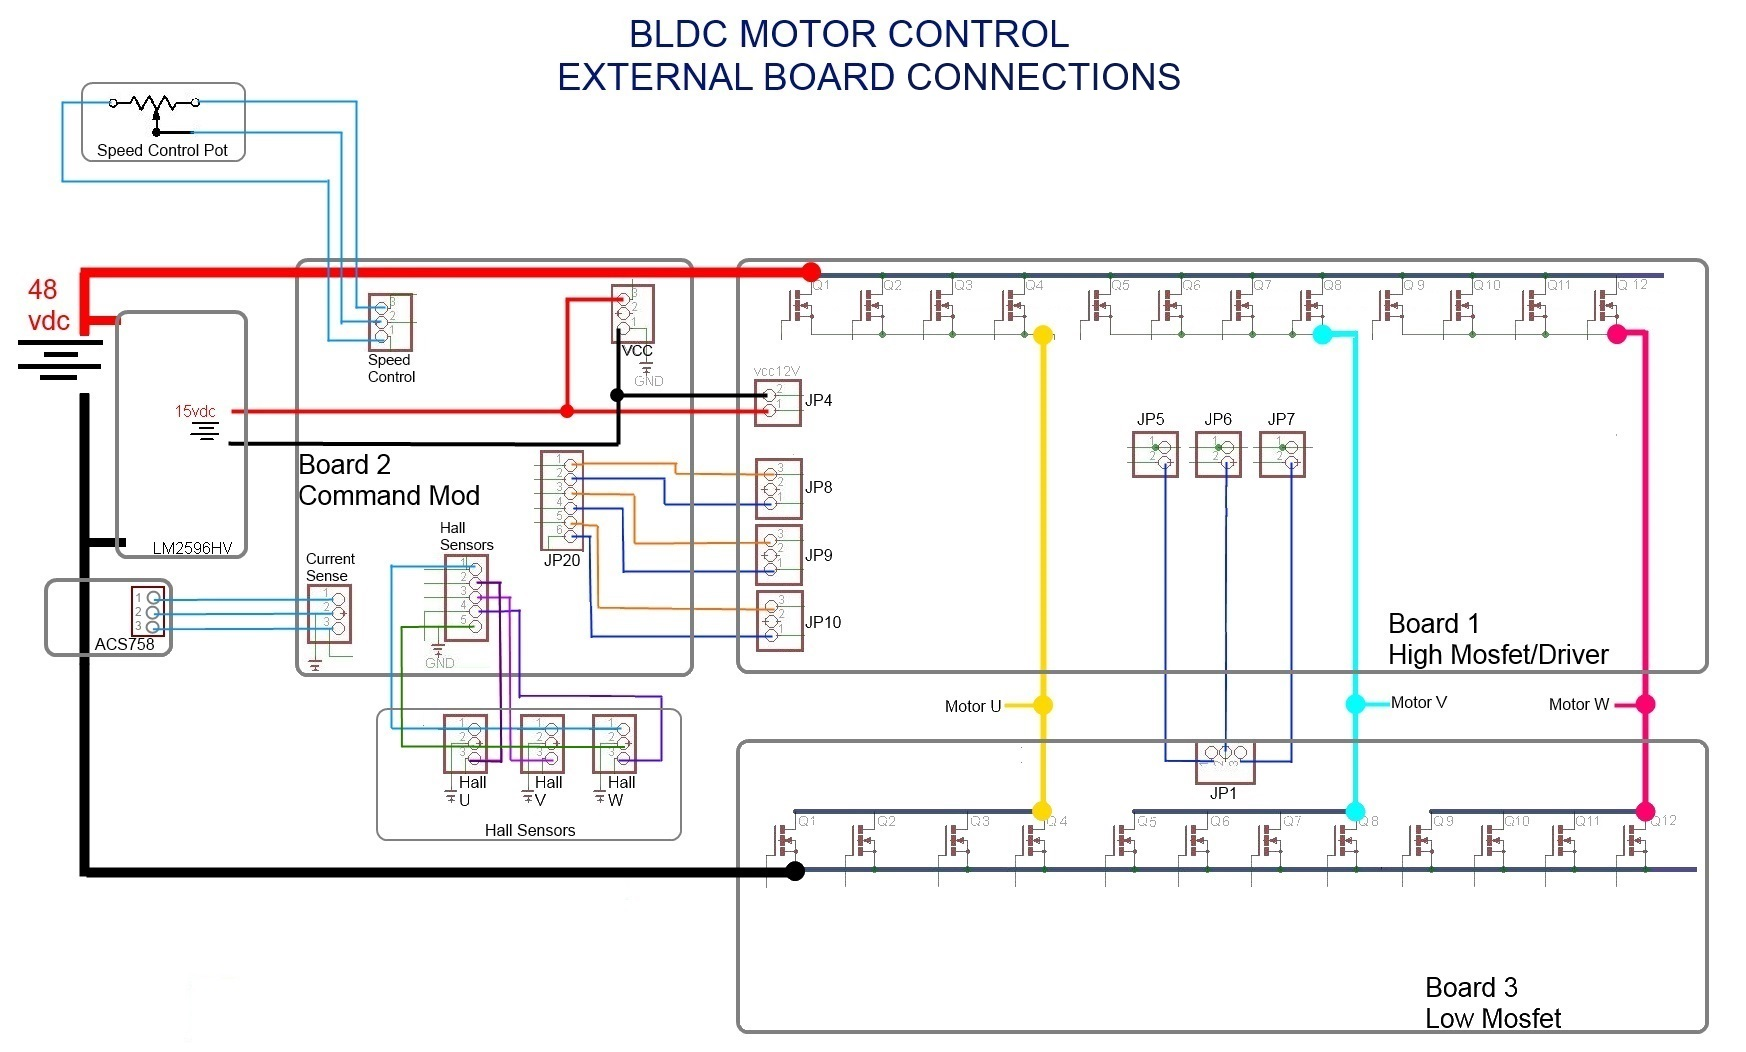 brushless controller schematic rdquo ldquo brushless motor rdquo rdquo brushless brushless controller schematic mc33035